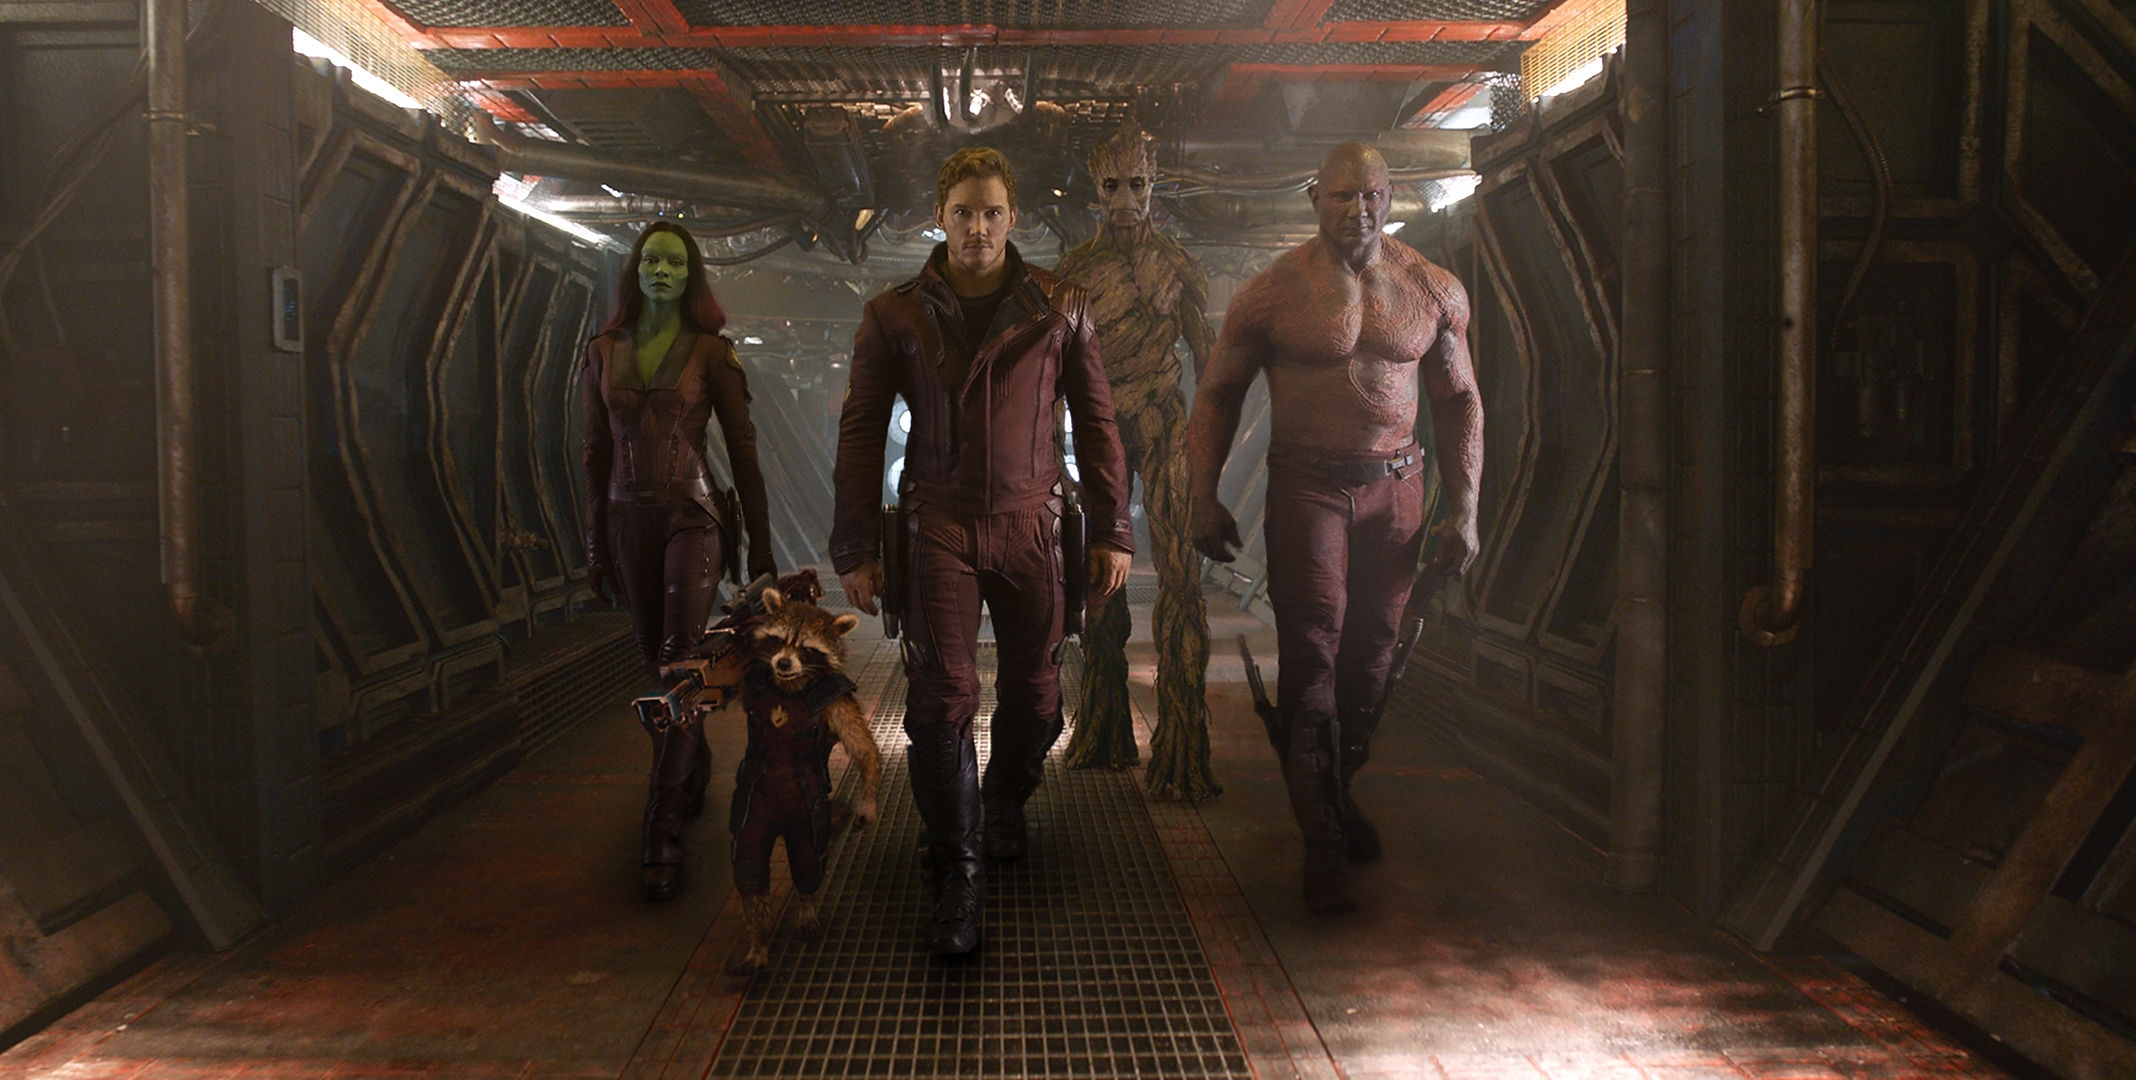 Guardians of the Galaxy Features Well-Known Actors